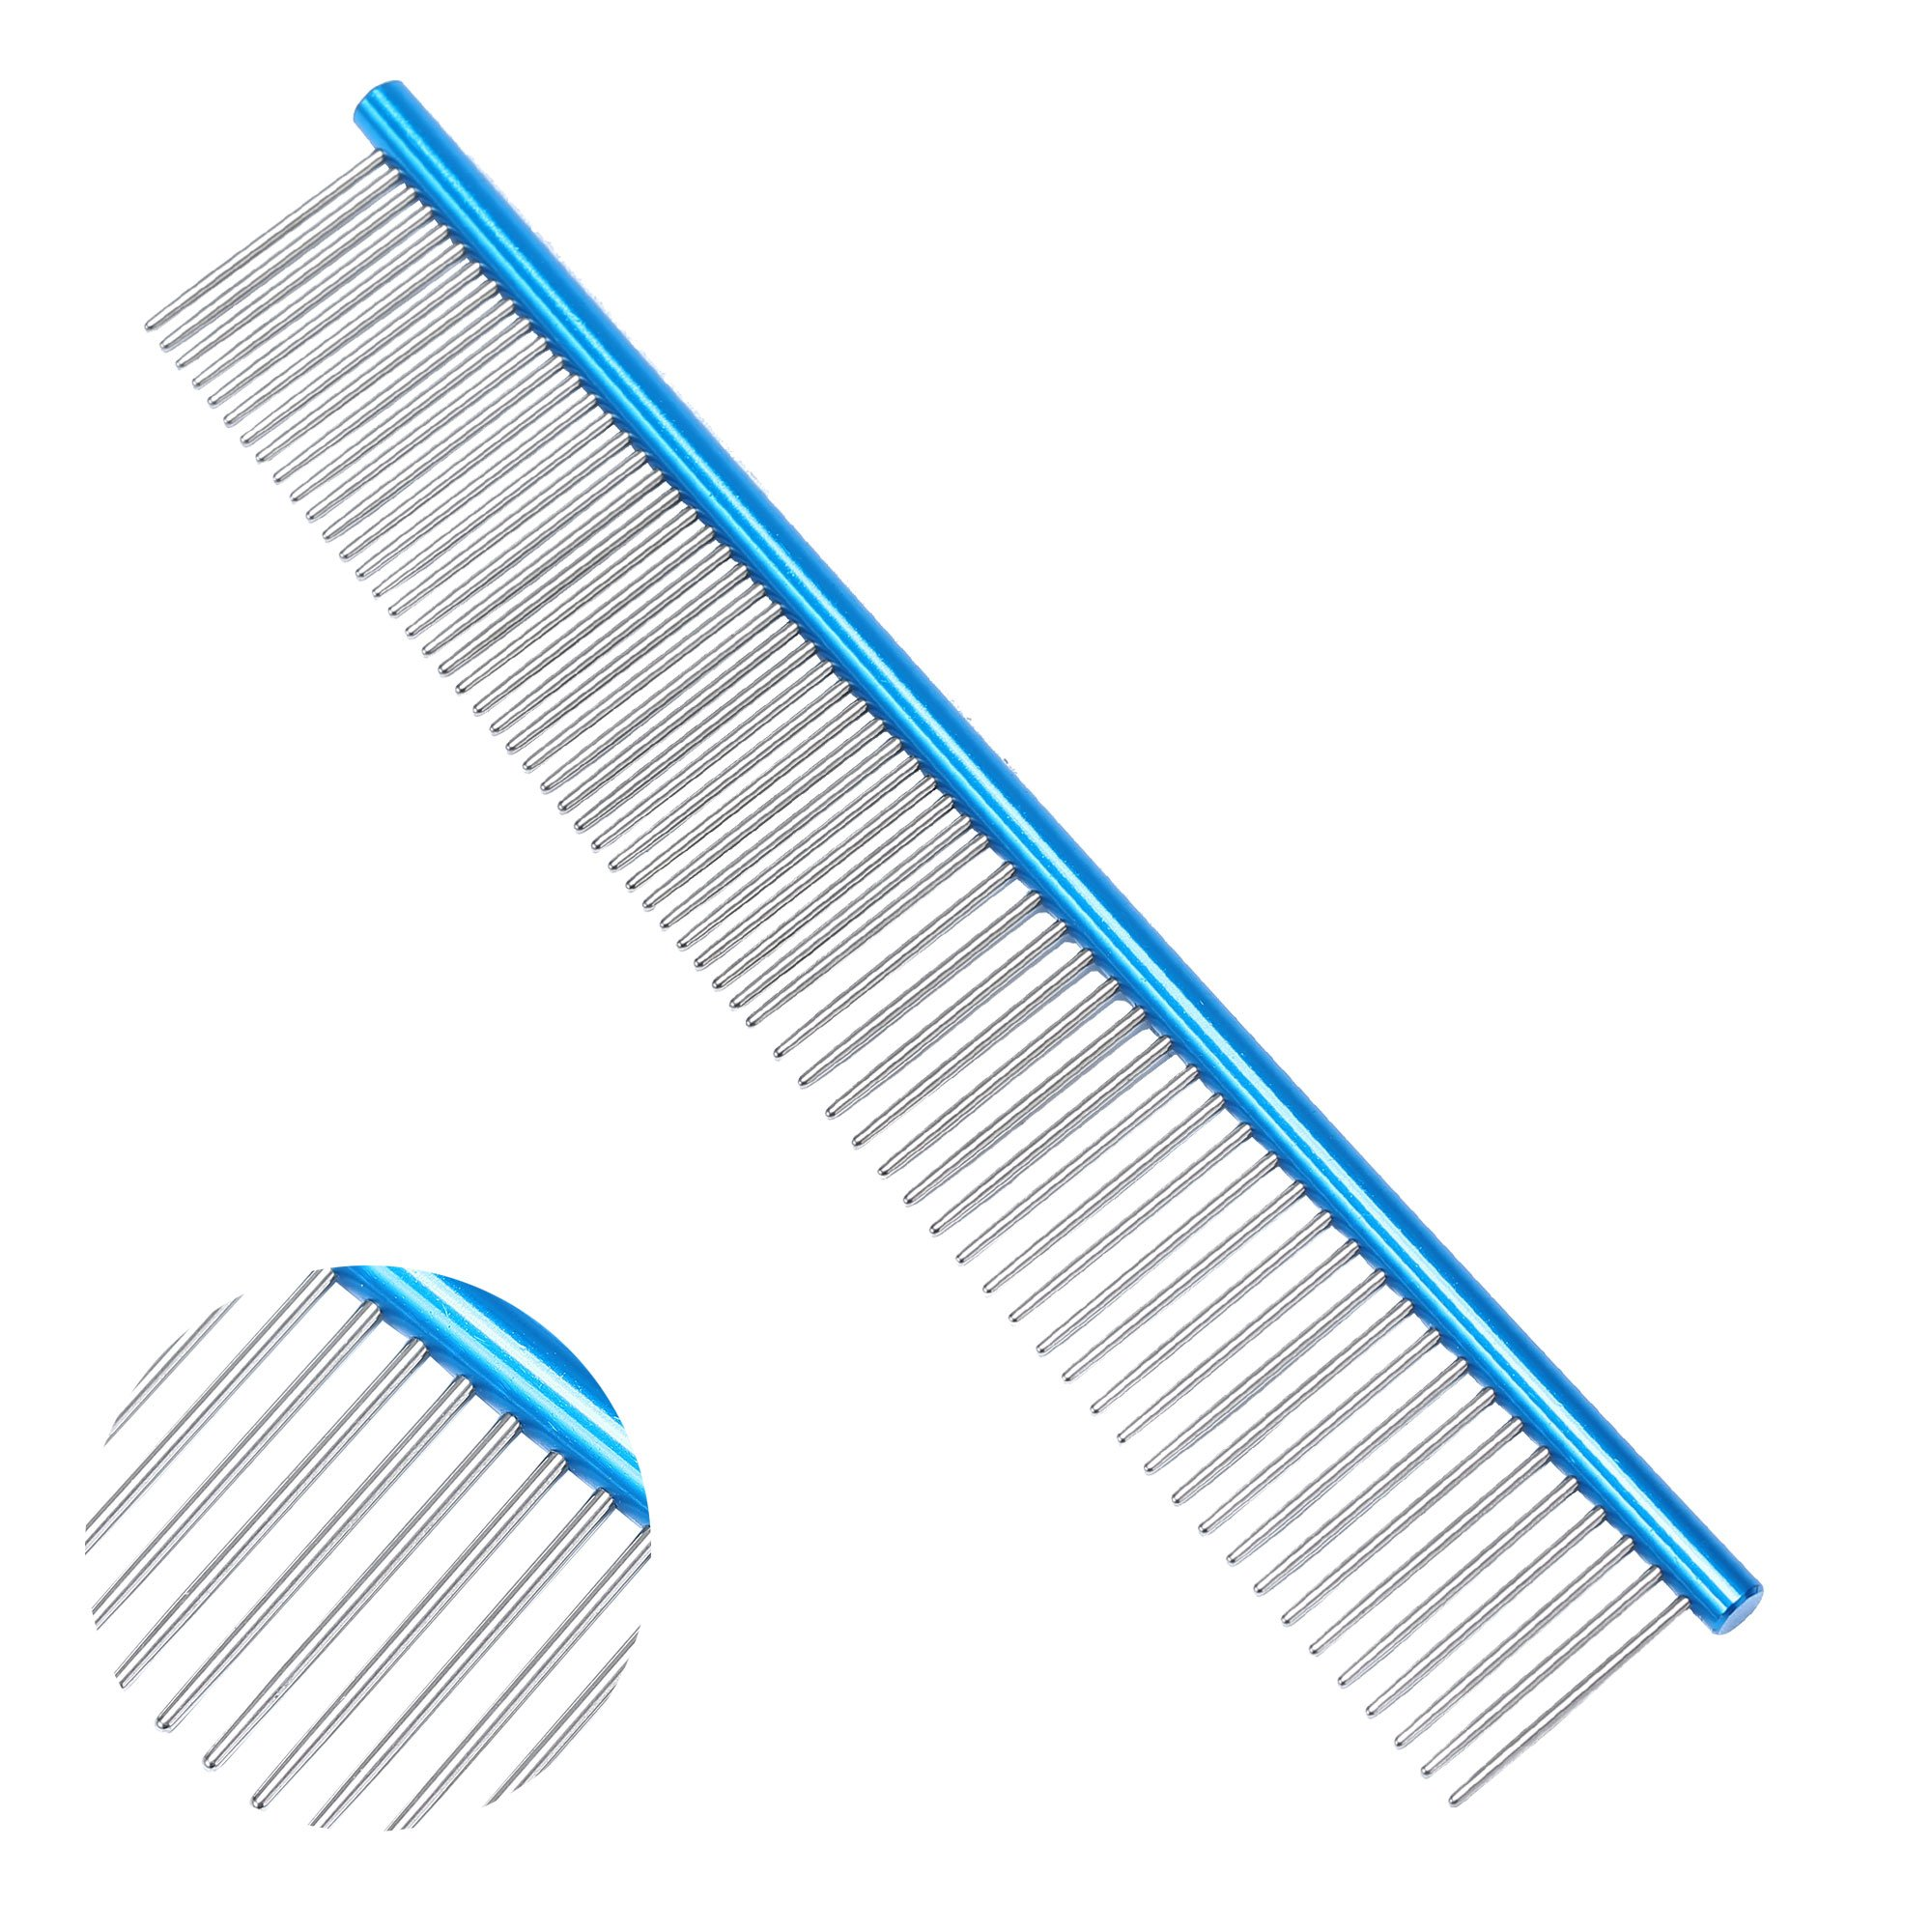 Stainless Steel Dog Comb-Grooming Comb For Dogs, Cats and Other Pets, Great Shedding Tool